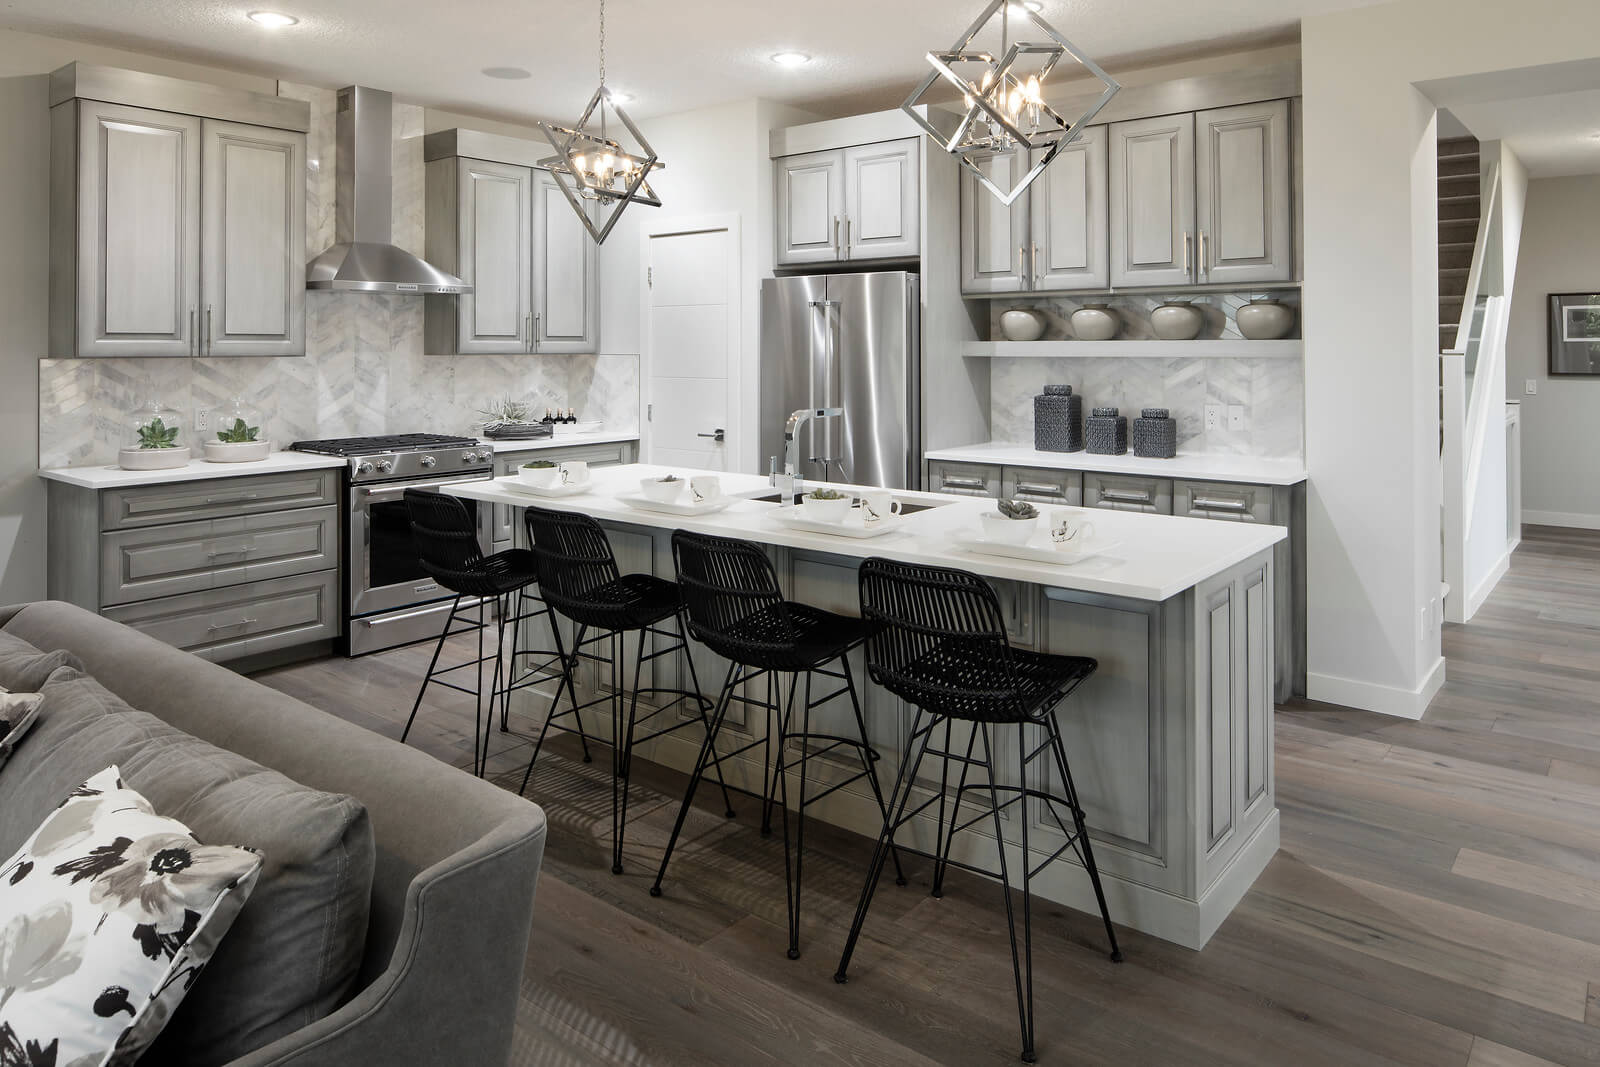 New Calgary  Model Home Savin in Shawnee Park, located at 338 SHAWNEE BOULEVARD SW Built By Cardel Homes Calgary